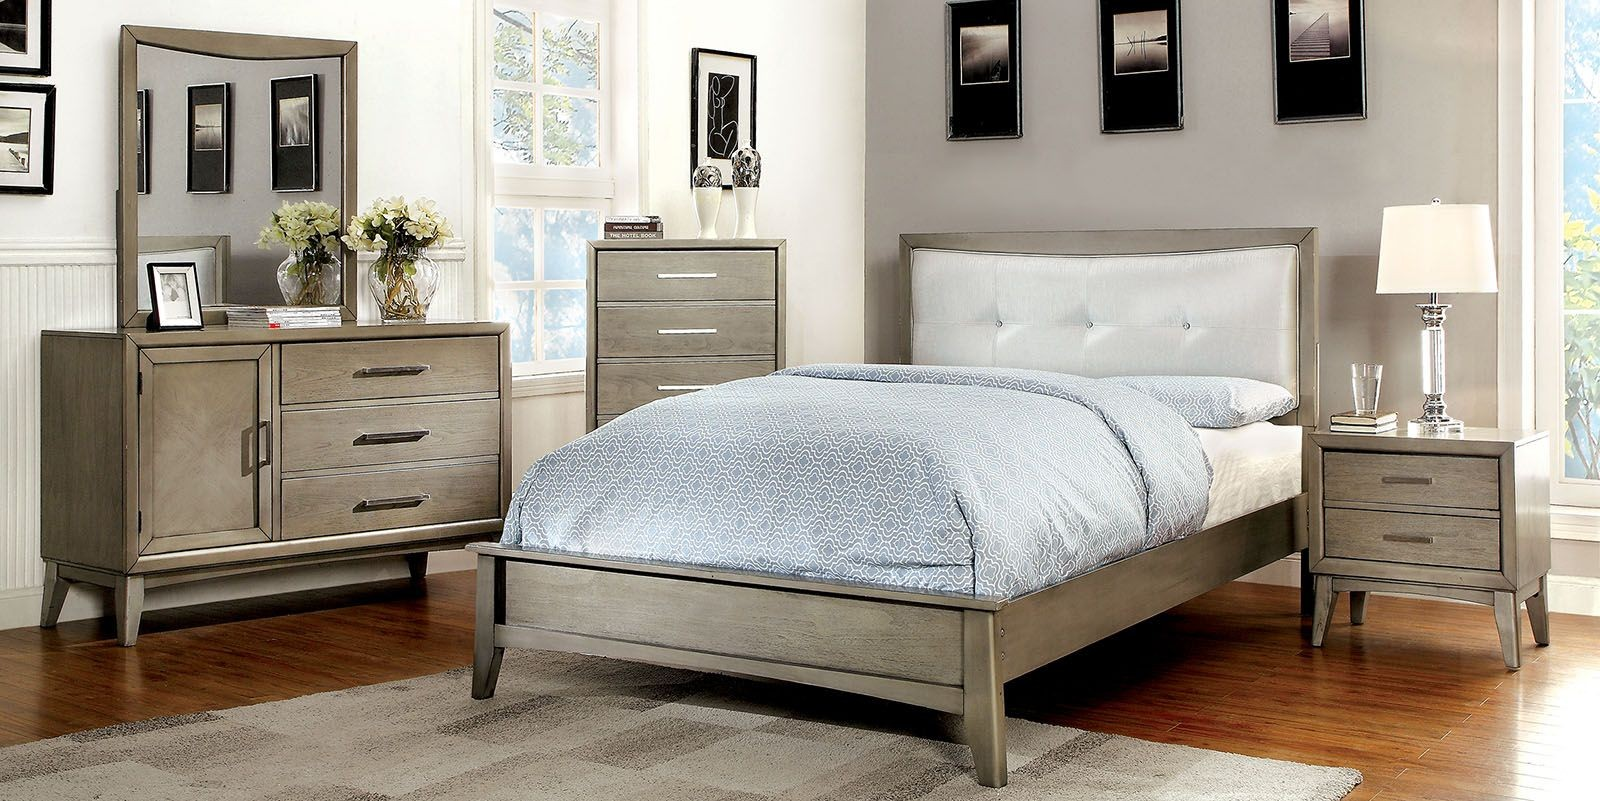 Snyder ii gray youth upholstered bedroom set from furniture of america coleman furniture - America bedroom furniture ...